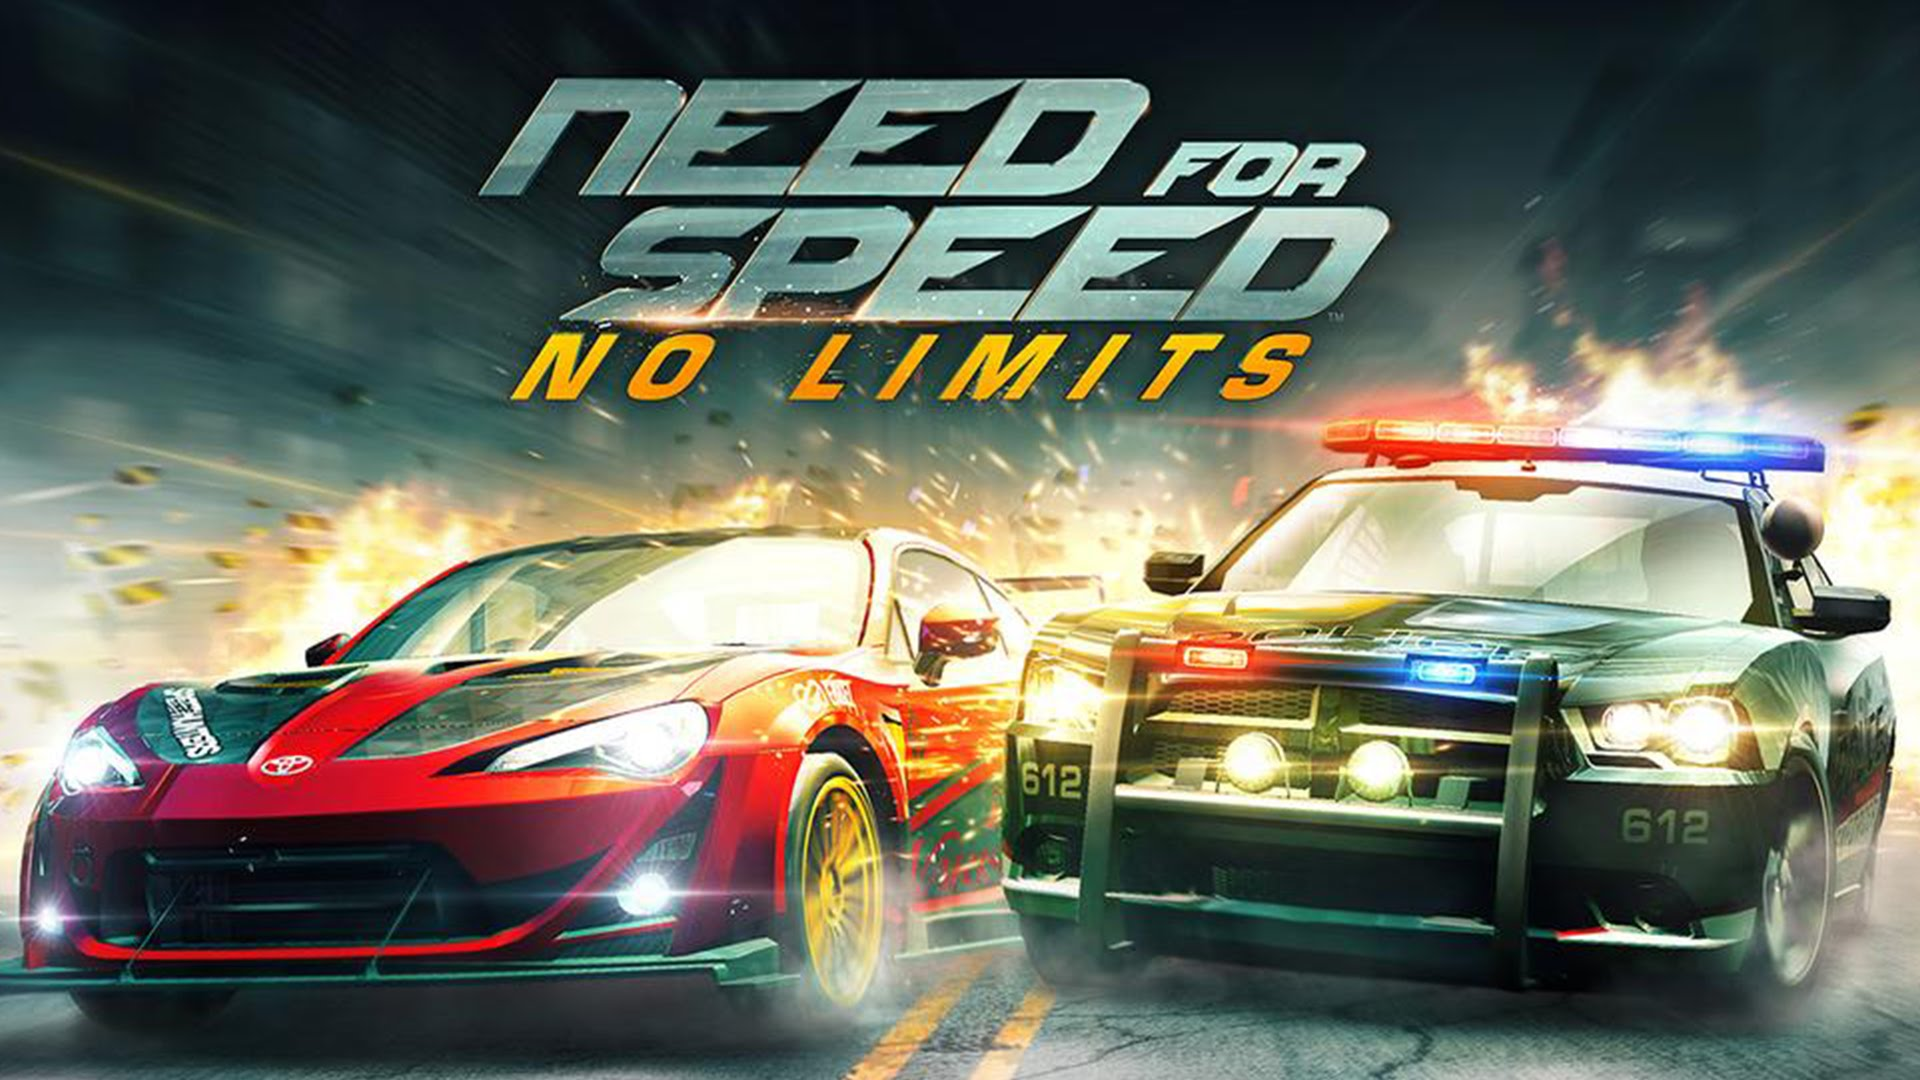 Modojo | Need for Speed: No Limits Is Out This Week